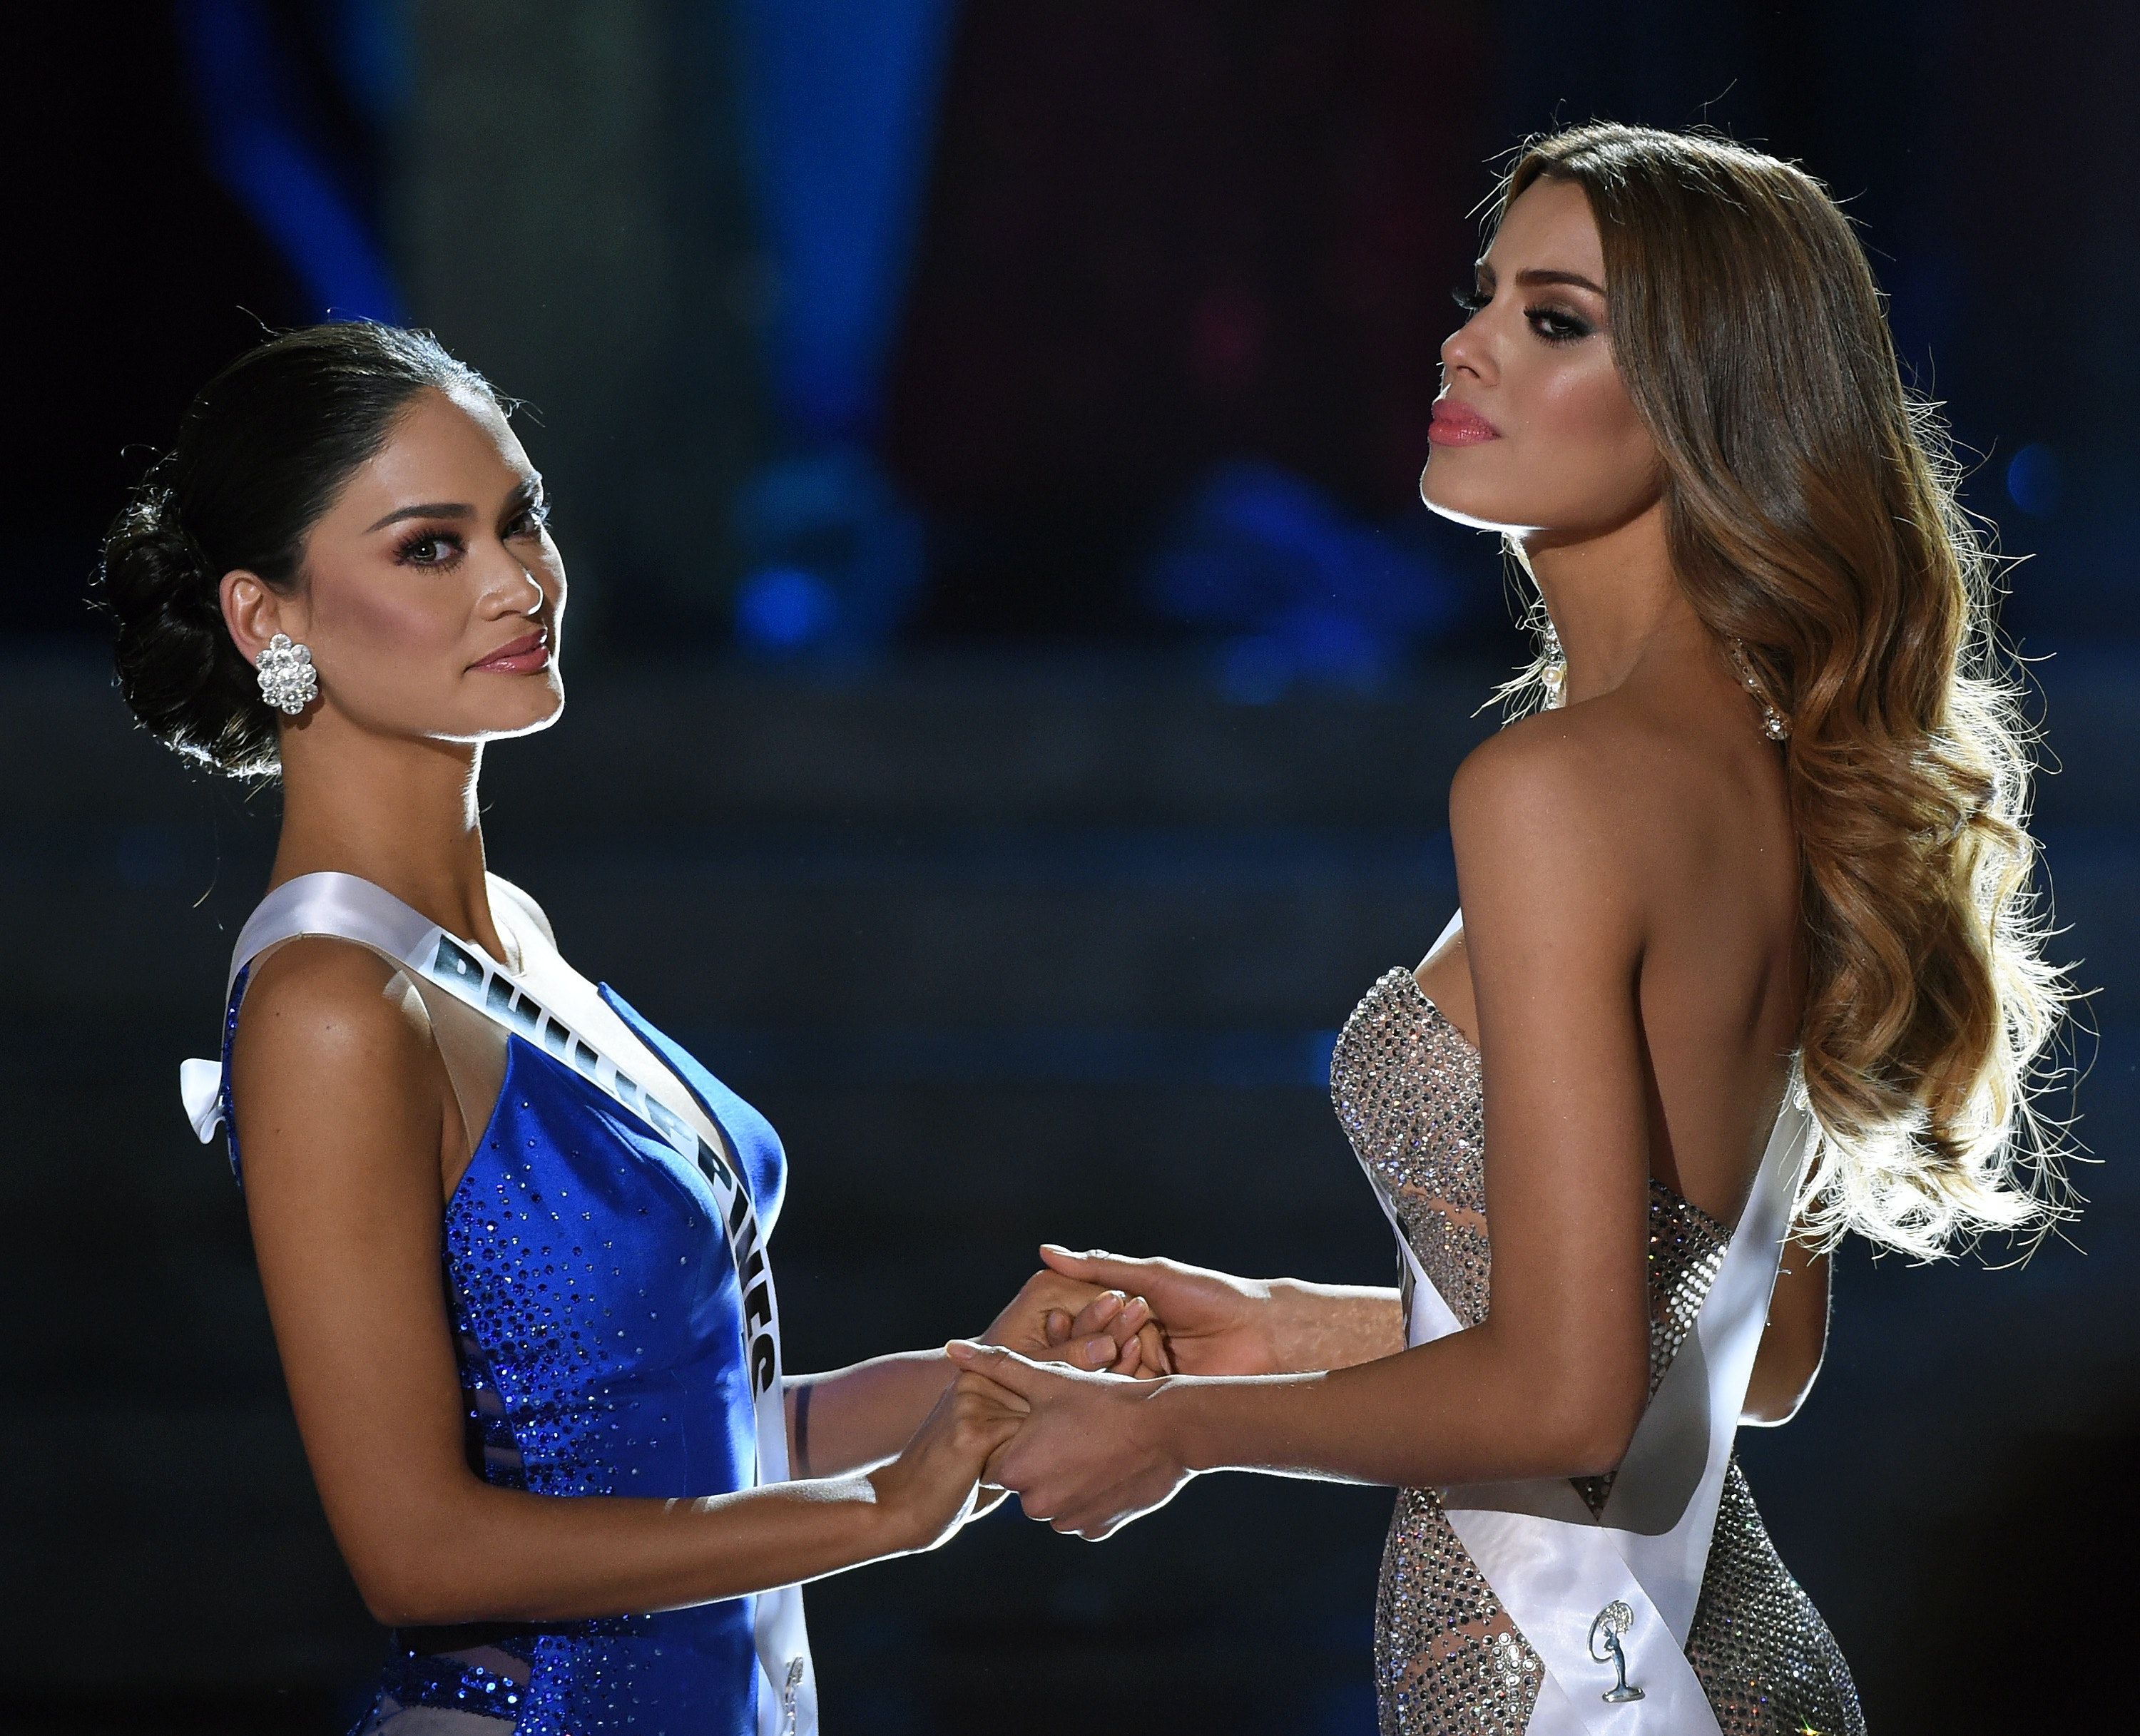 Funny Meme Miss Universe : How many miss universe contestants are there the competition